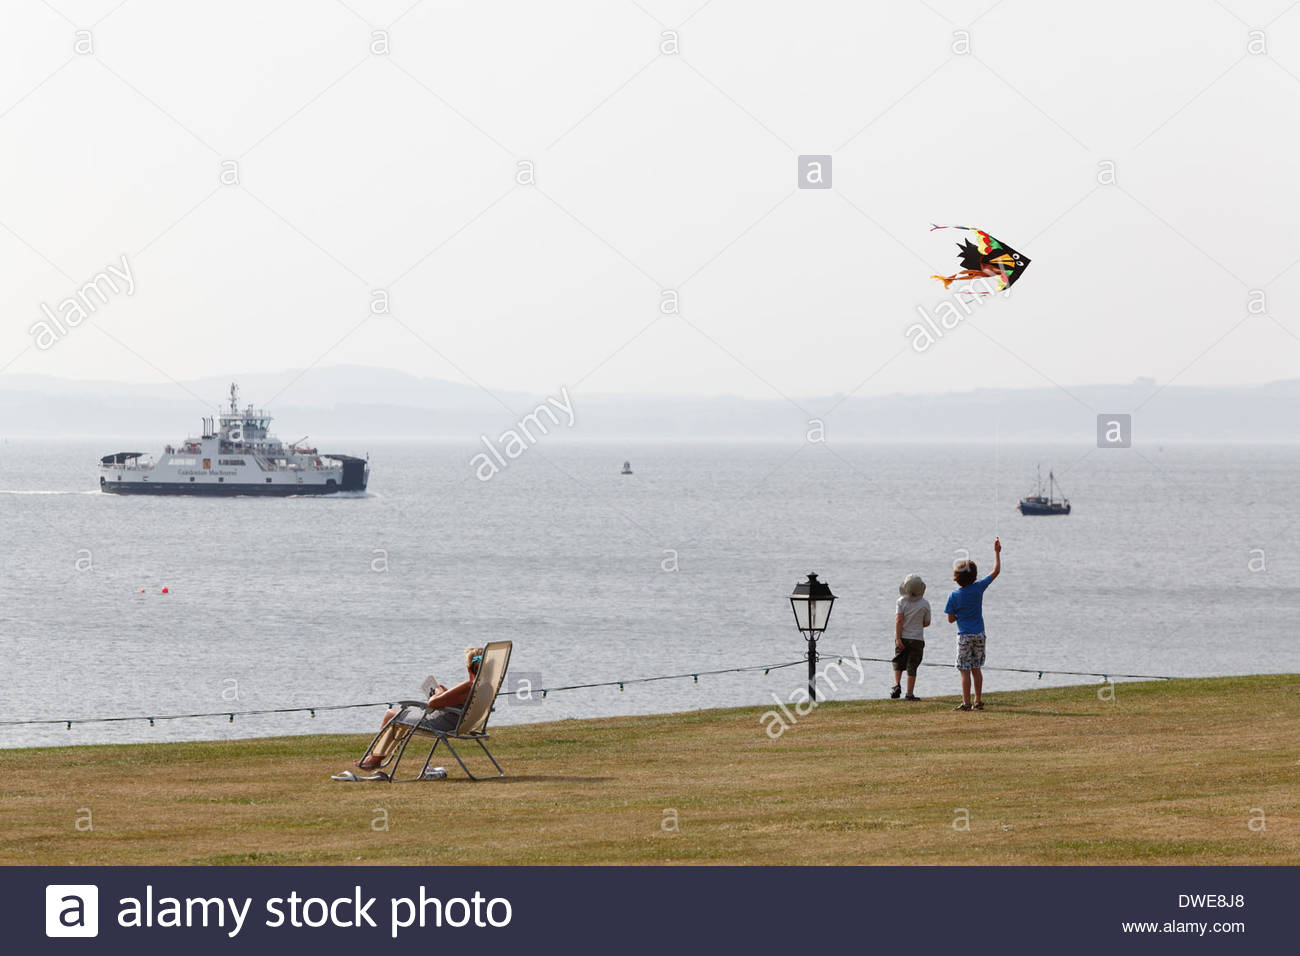 Two boys flying a kite and a woman sunbathing in the seaside town of Largs beside the Firth of Clyde, Scotland, UK - Stock Image